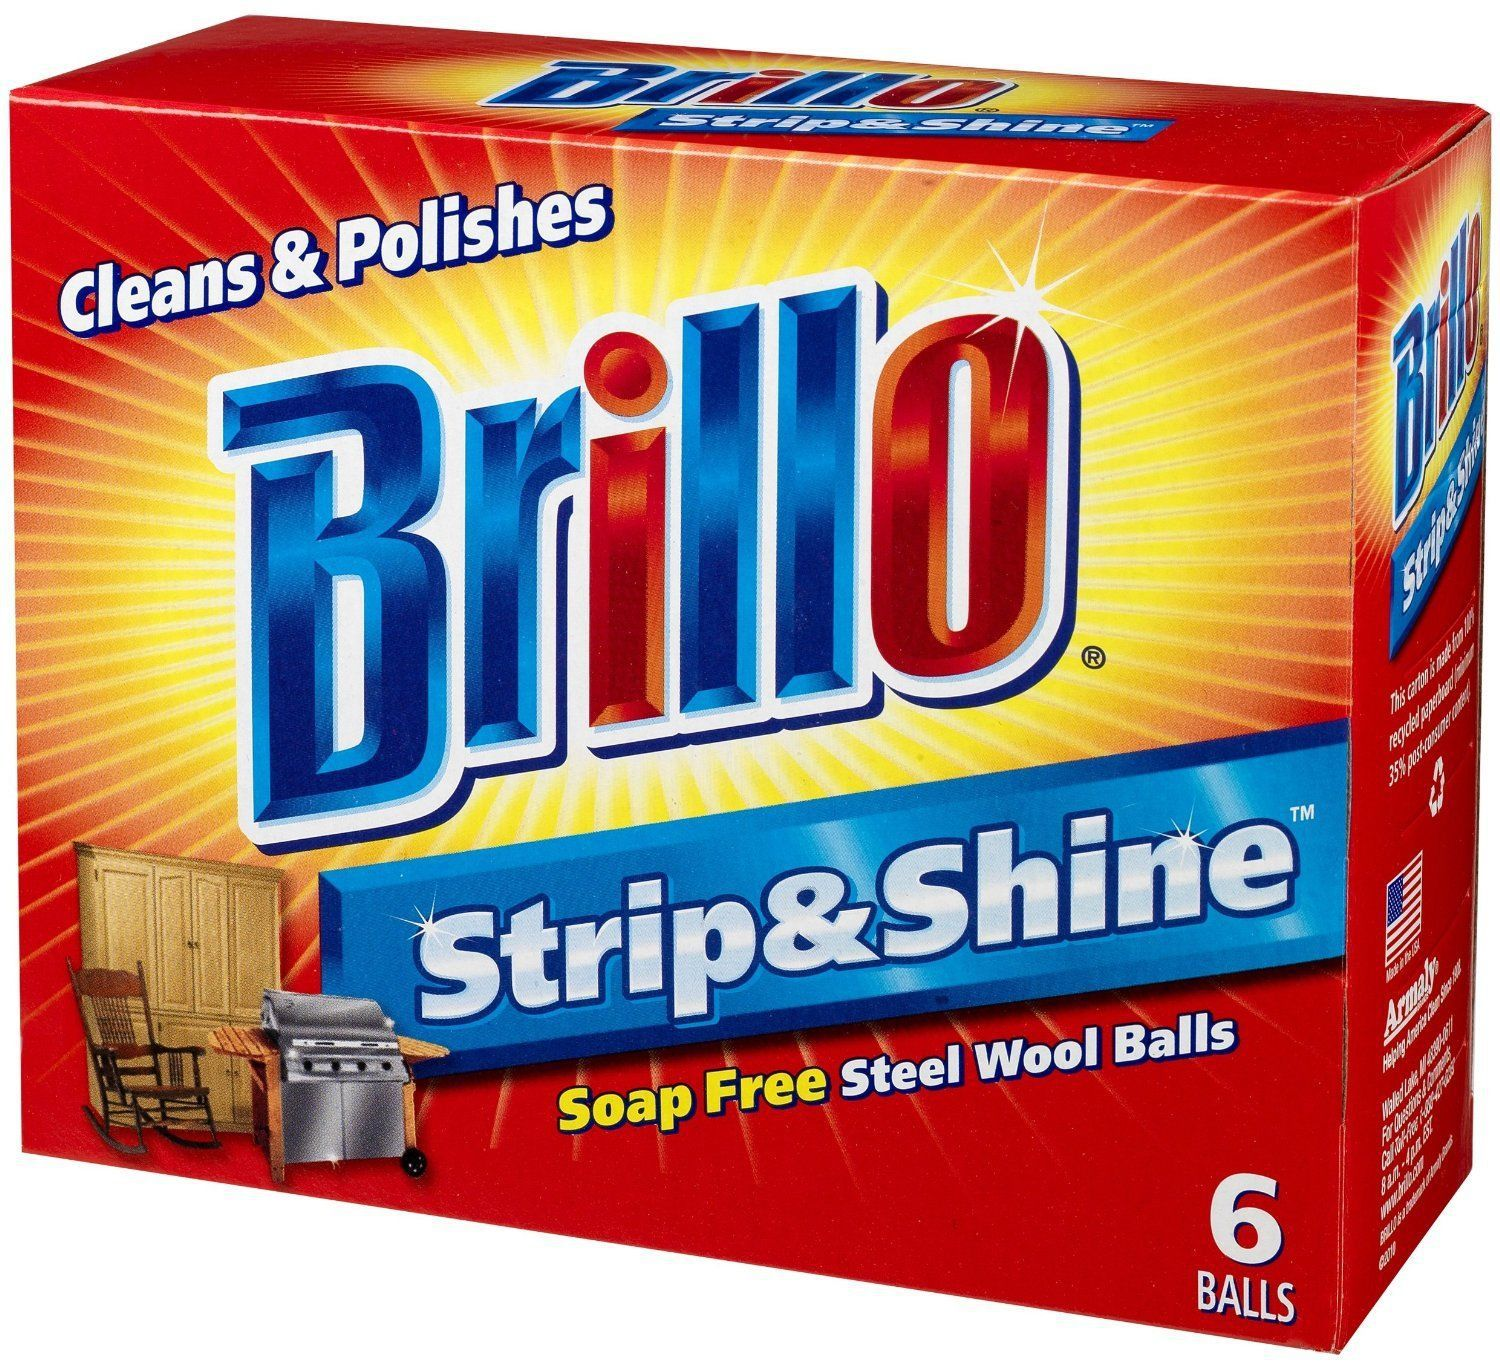 Primary image for New Brillo Strip and Shine Steel Wool Balls Soap Free, 6 steel wool balls In Box